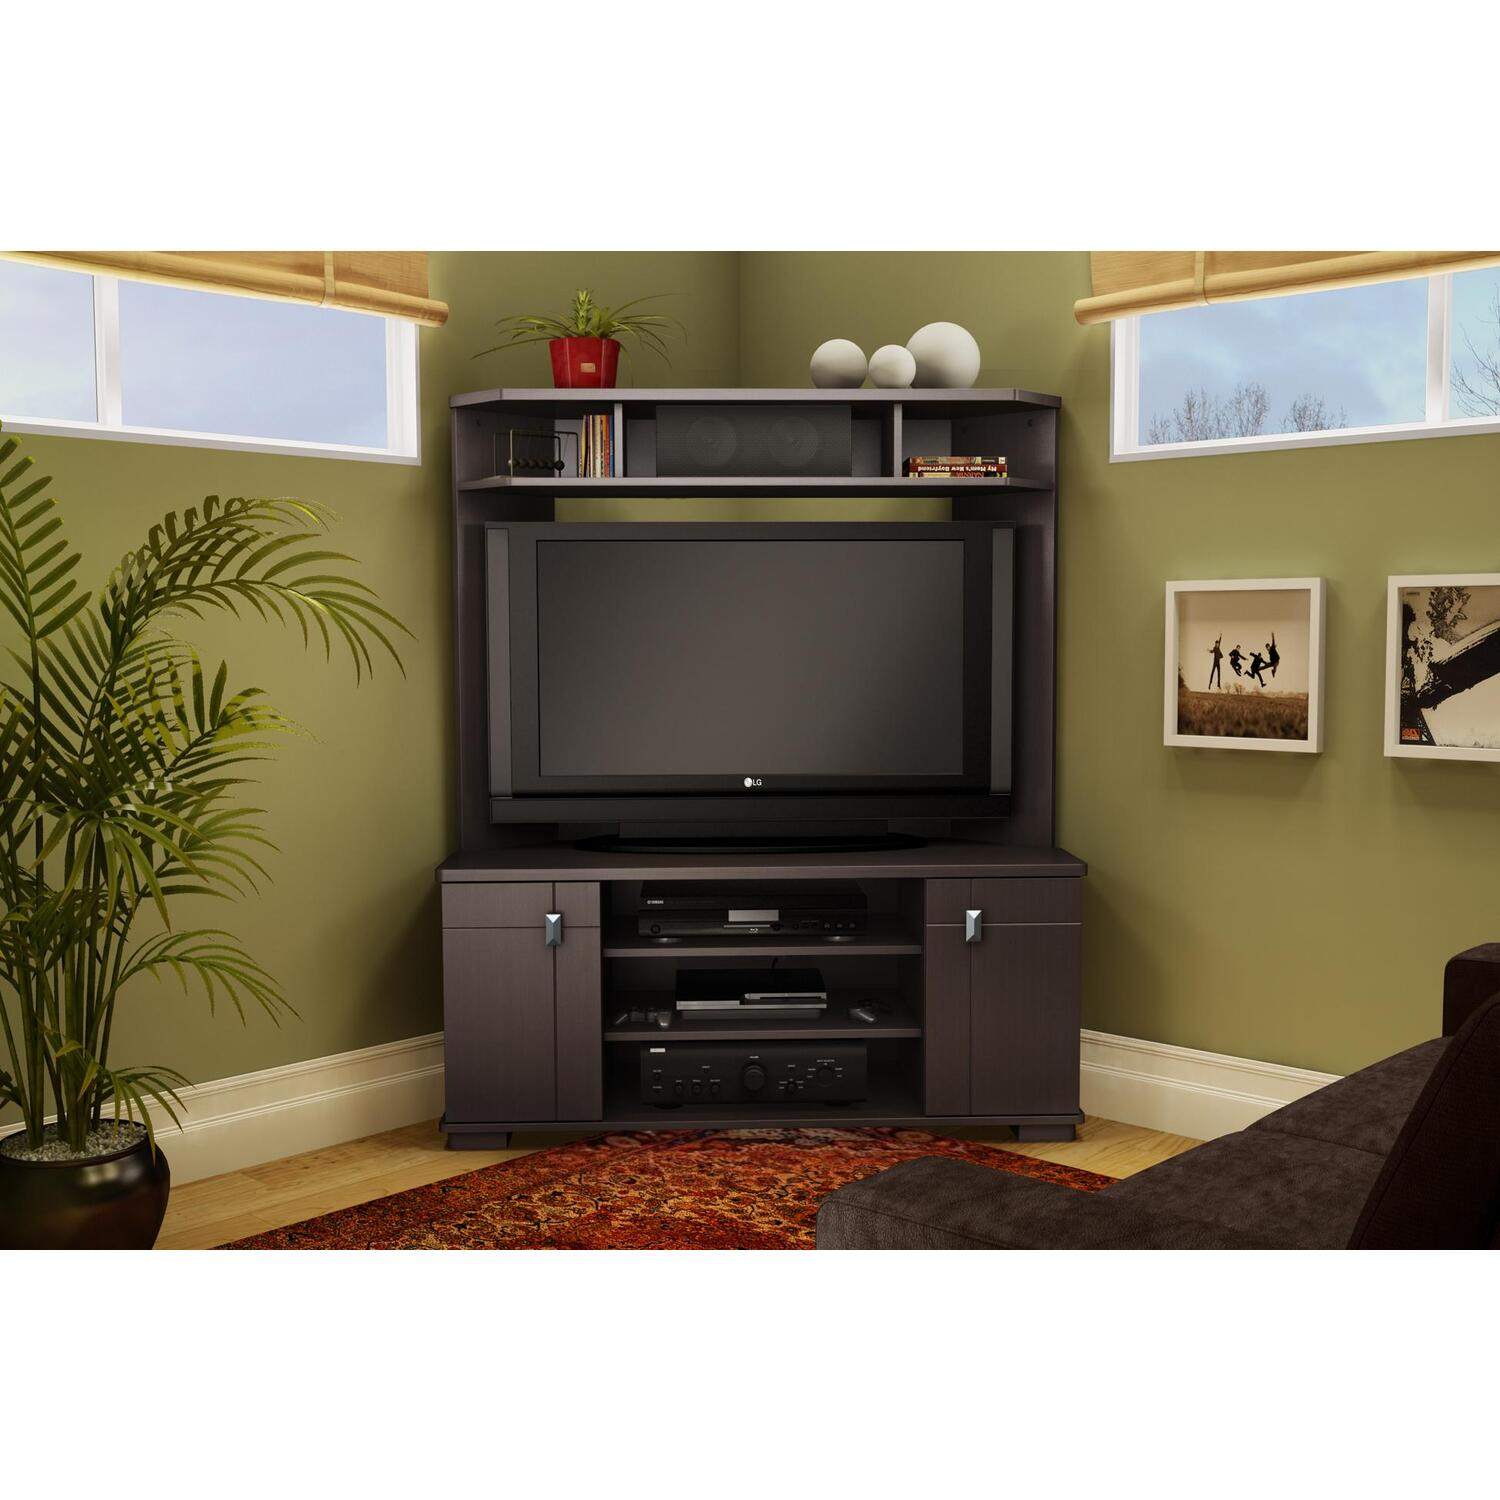 Vertex corner tv unit ojcommerce for Living room corner tv ideas